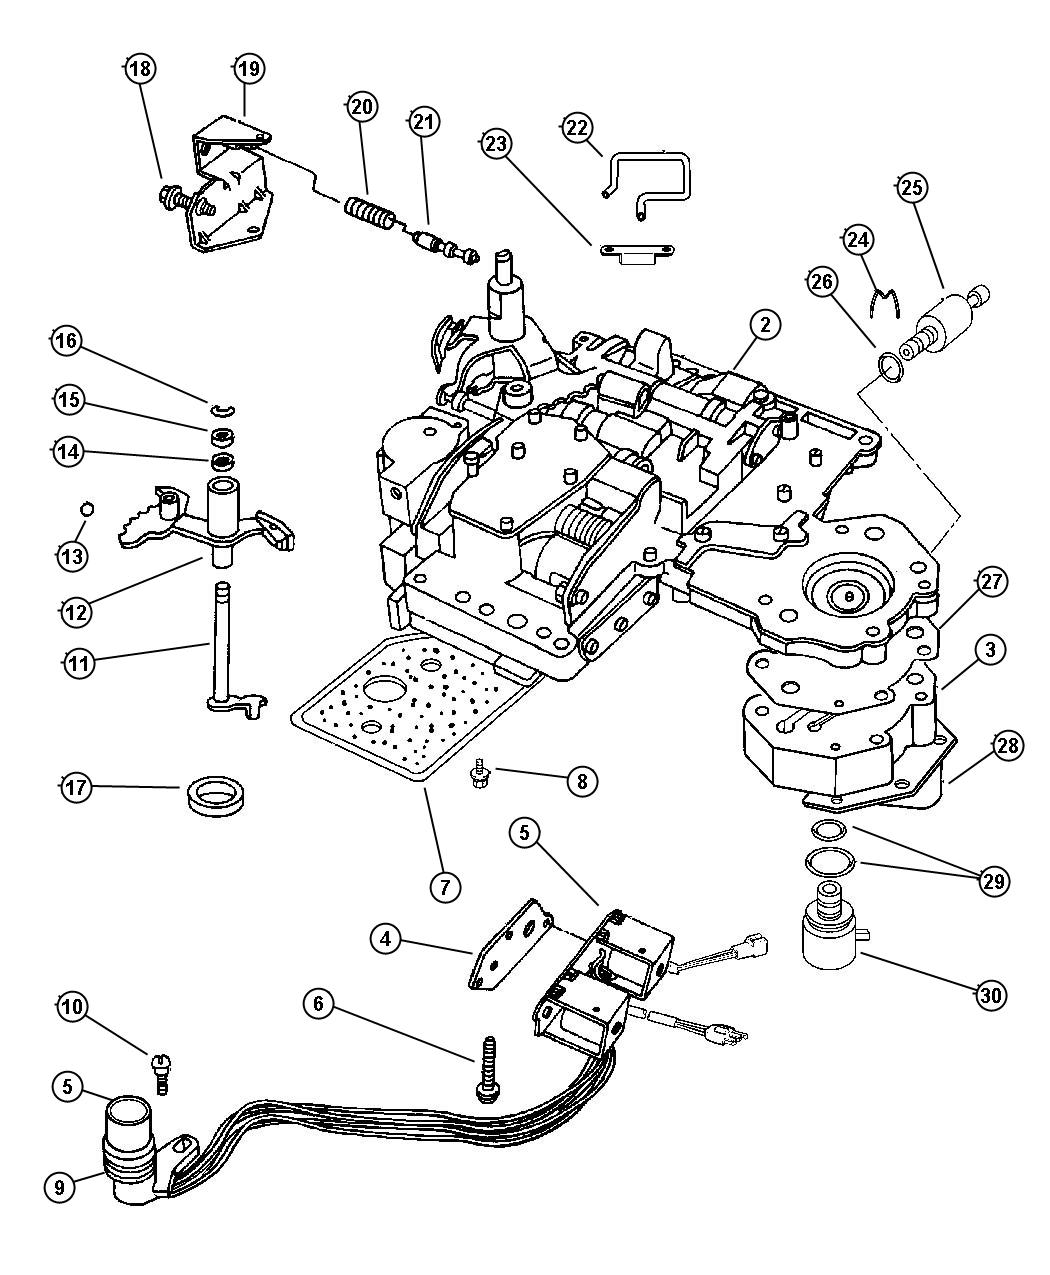 2001 Dodge Dakota Transmission Diagram Wiring Home Together With 46re Online Durango